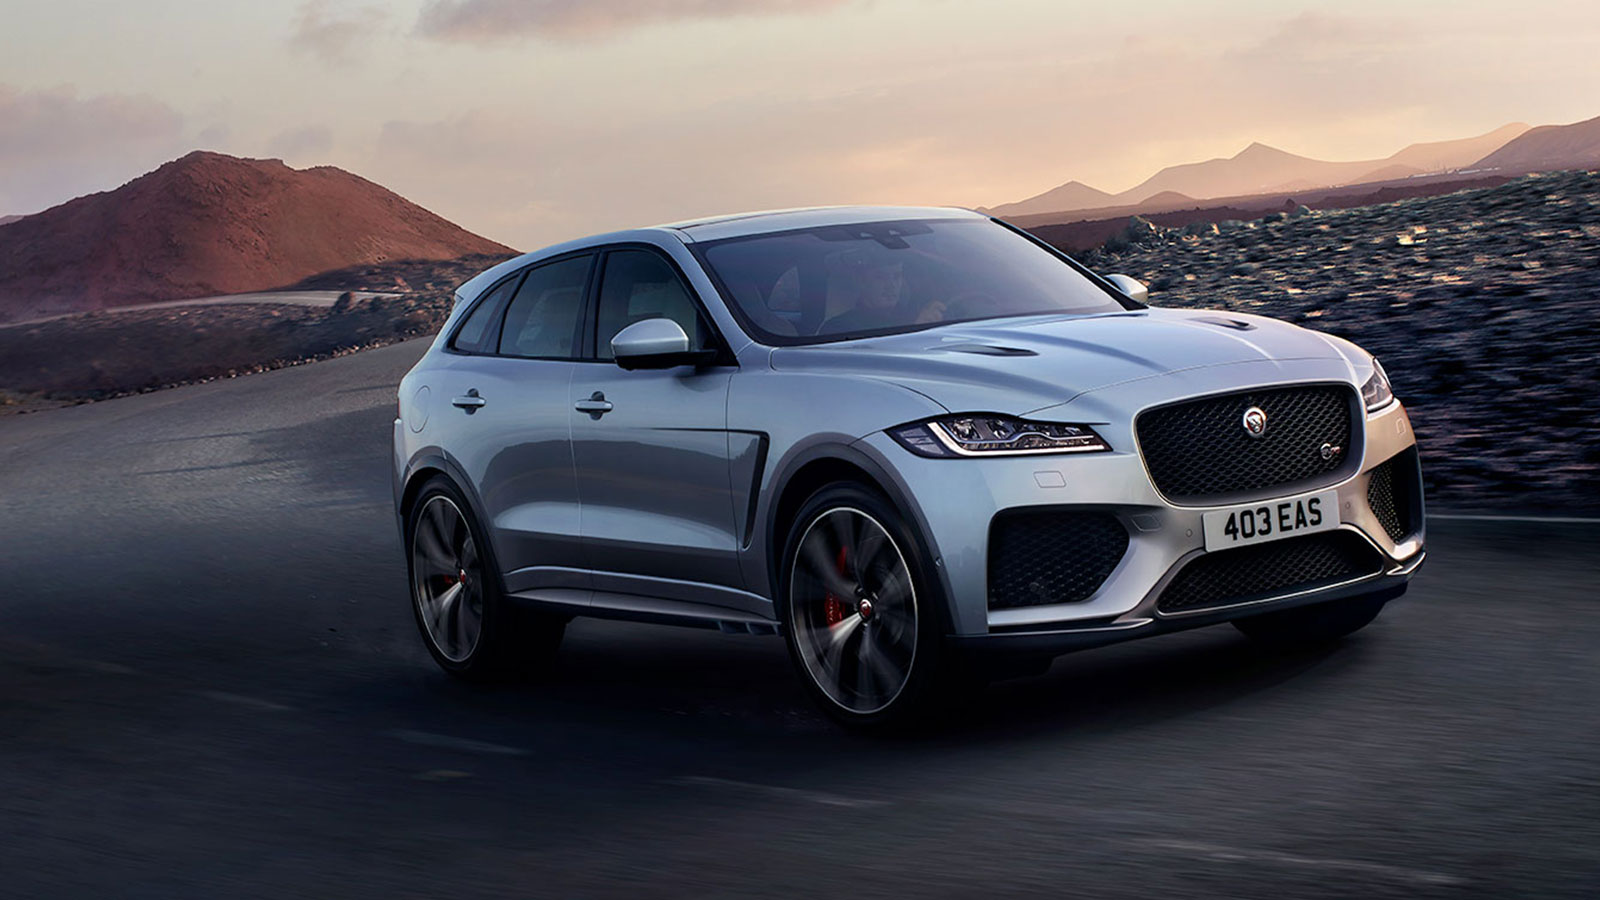 Front View of Silver F-Pace.